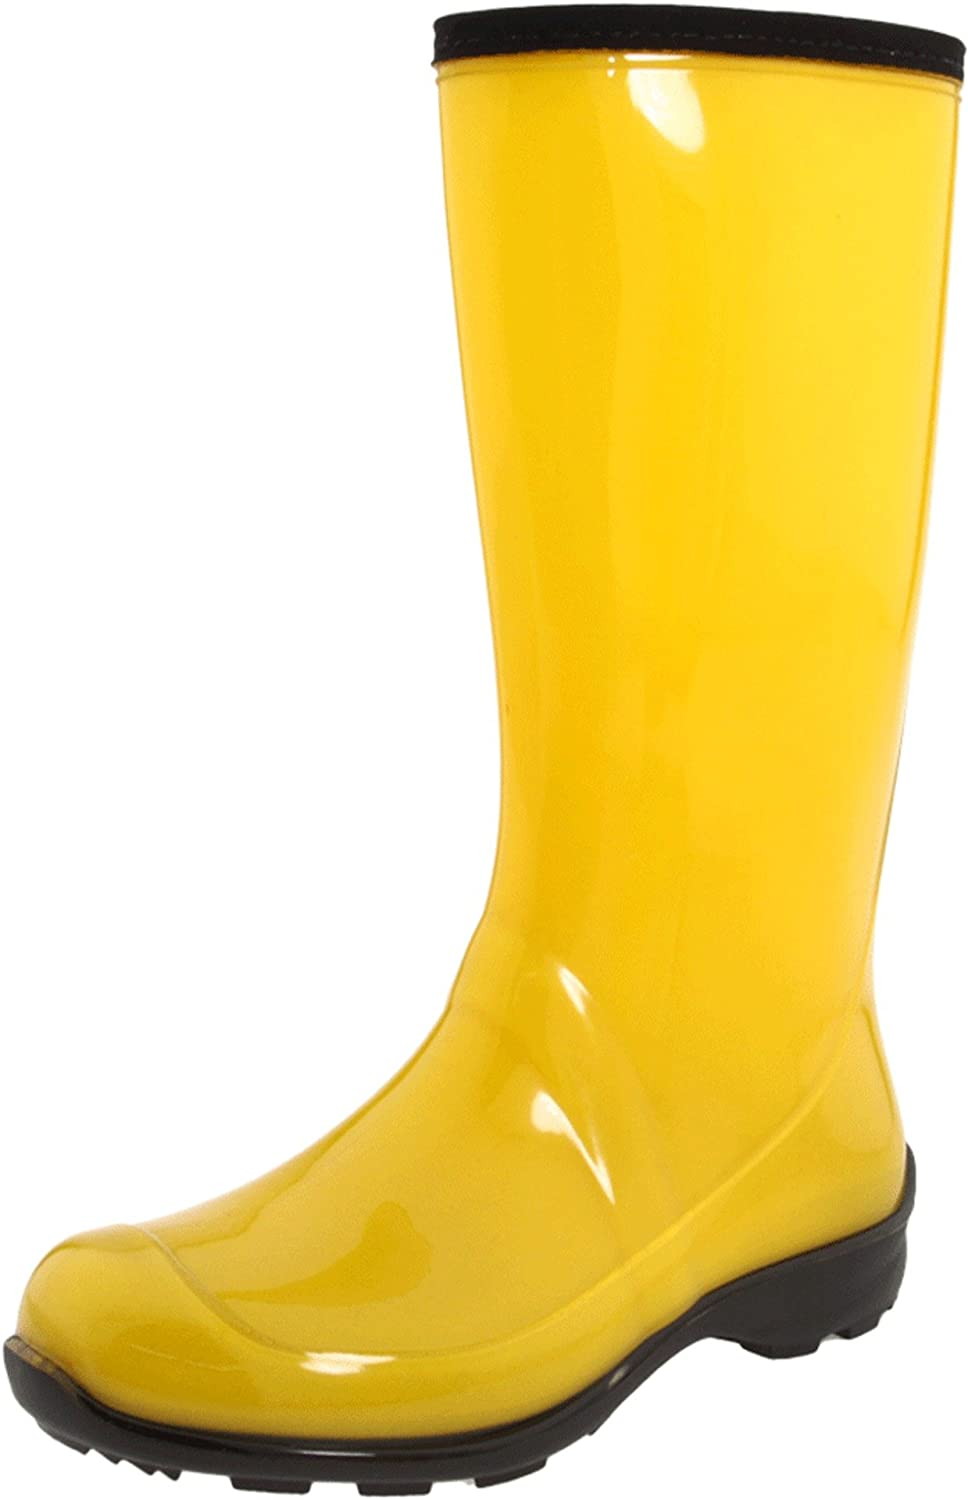 yellow rain boots for women